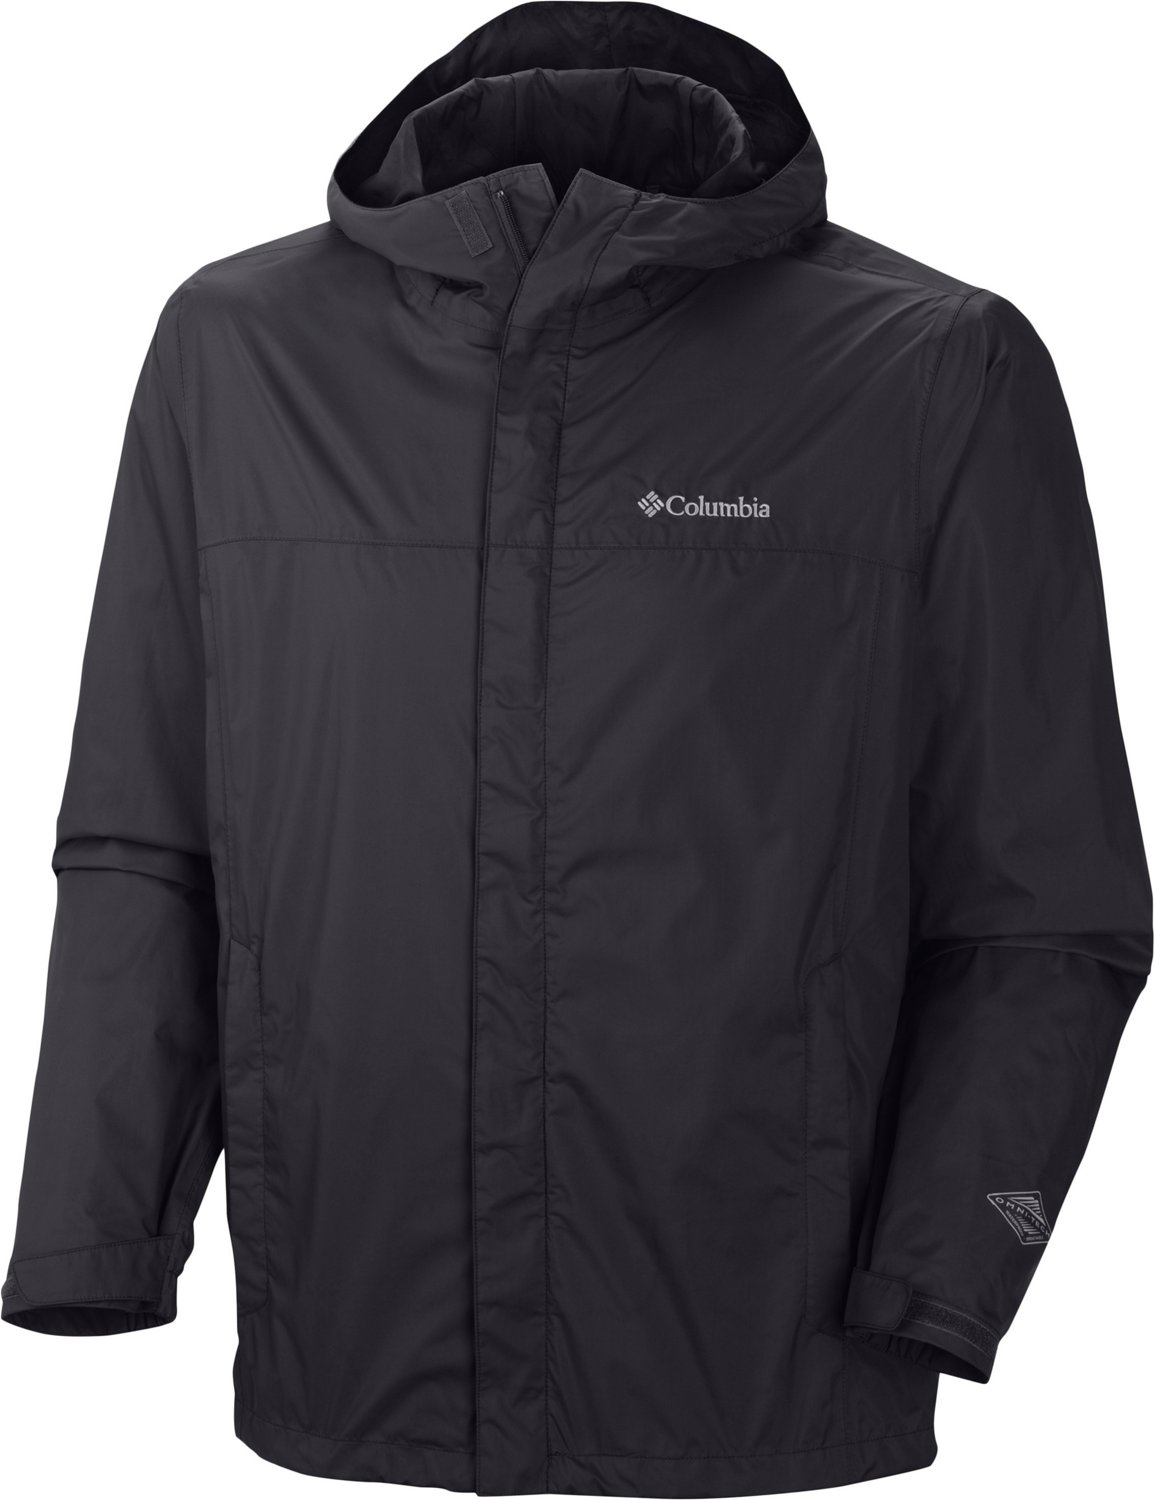 feb0d41737b Display product reviews for Columbia Sportswear Men s Watertight 2 Rain  Jacket